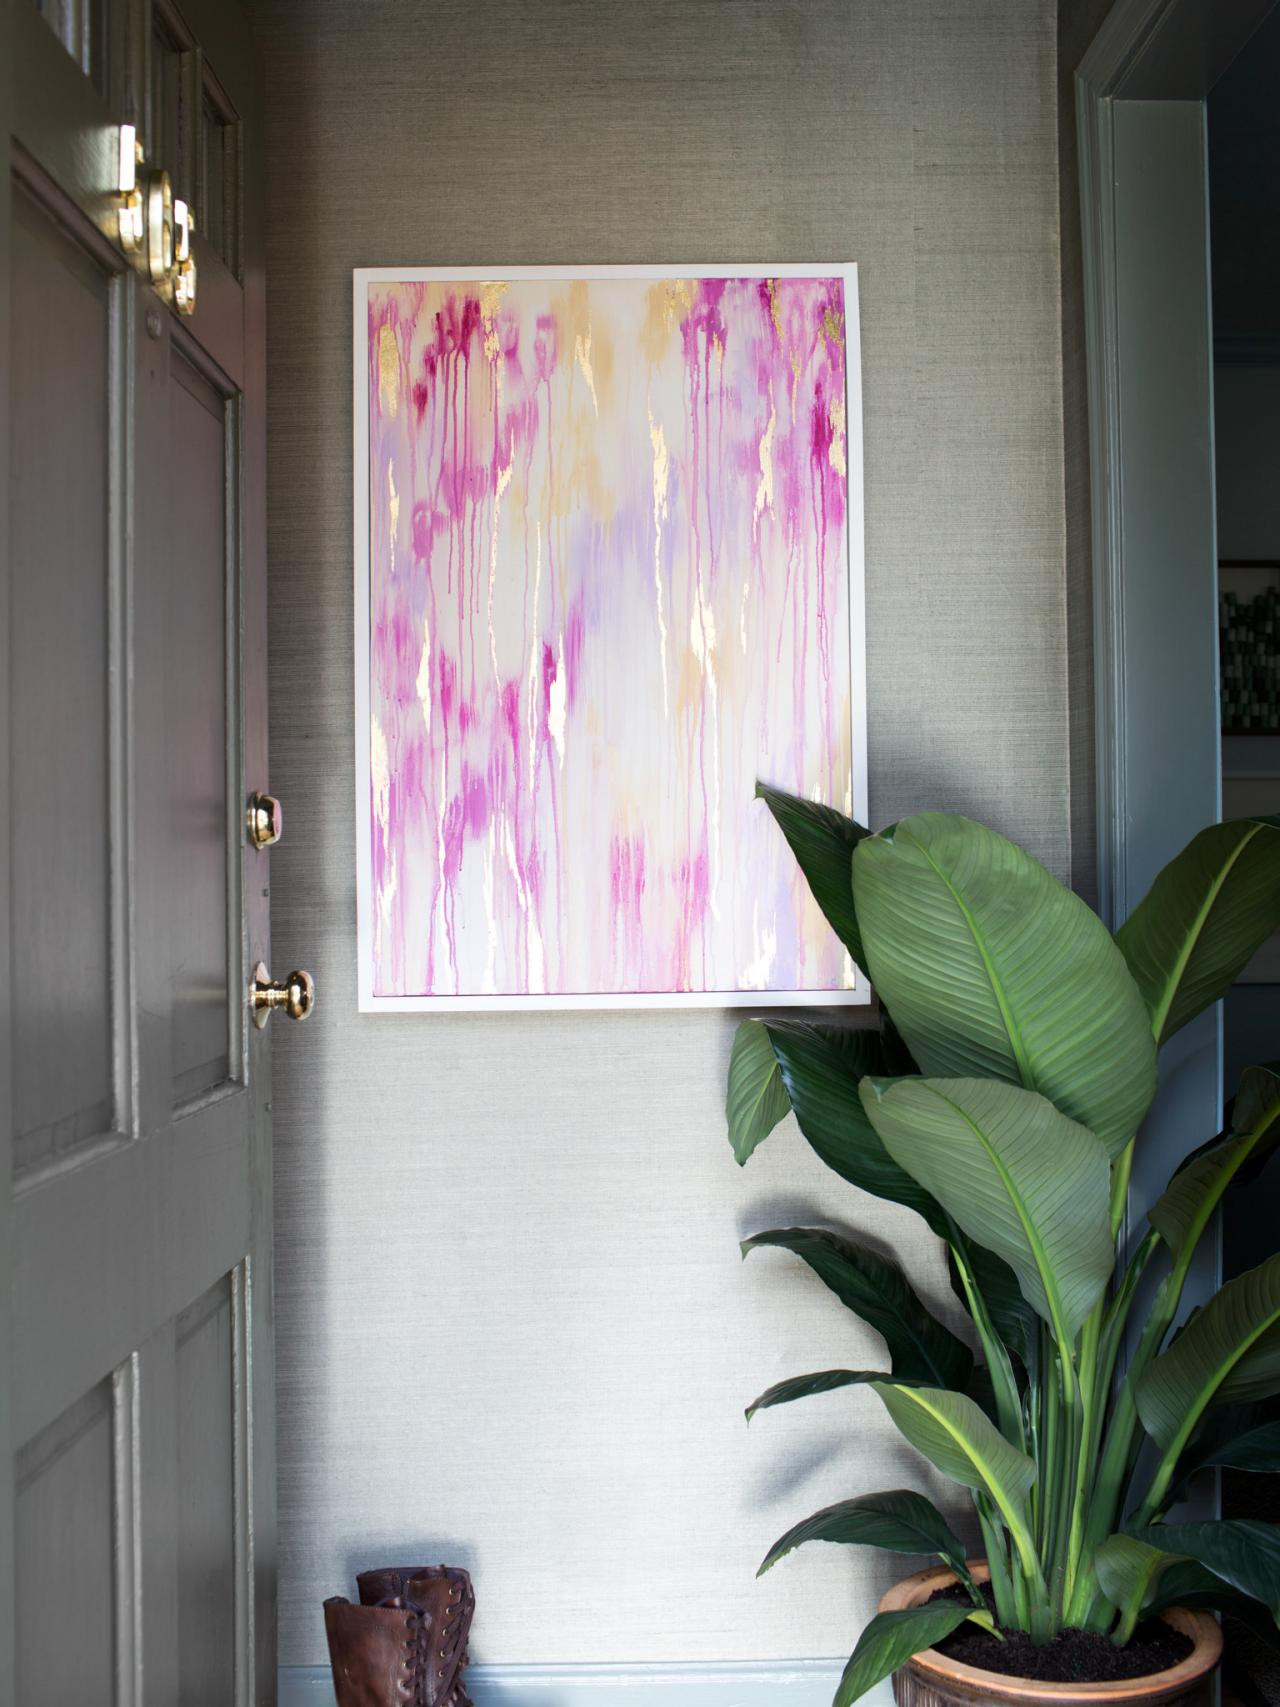 Best ideas about DIY Painting Ideas . Save or Pin 6 Chic DIY Art Projects Feng Shui Art Now.